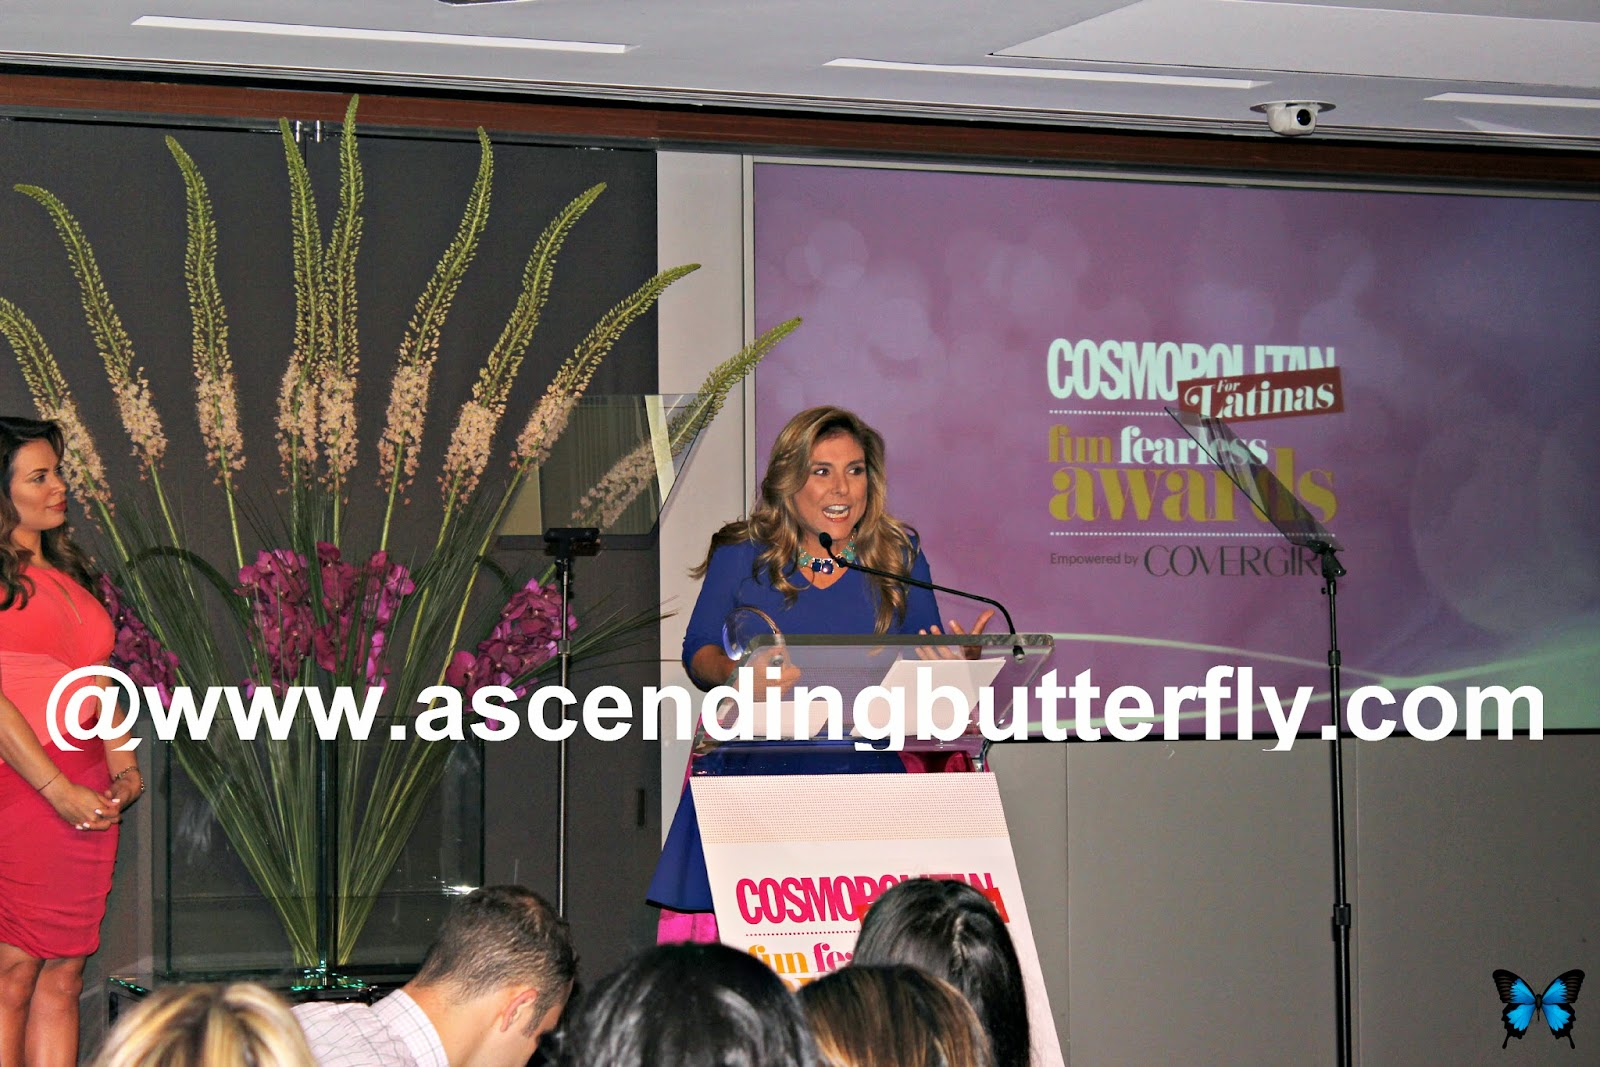 Chef Lorena Garcia accepts a Cosmopolitan for Latinas Fun Fearless Award in New York City